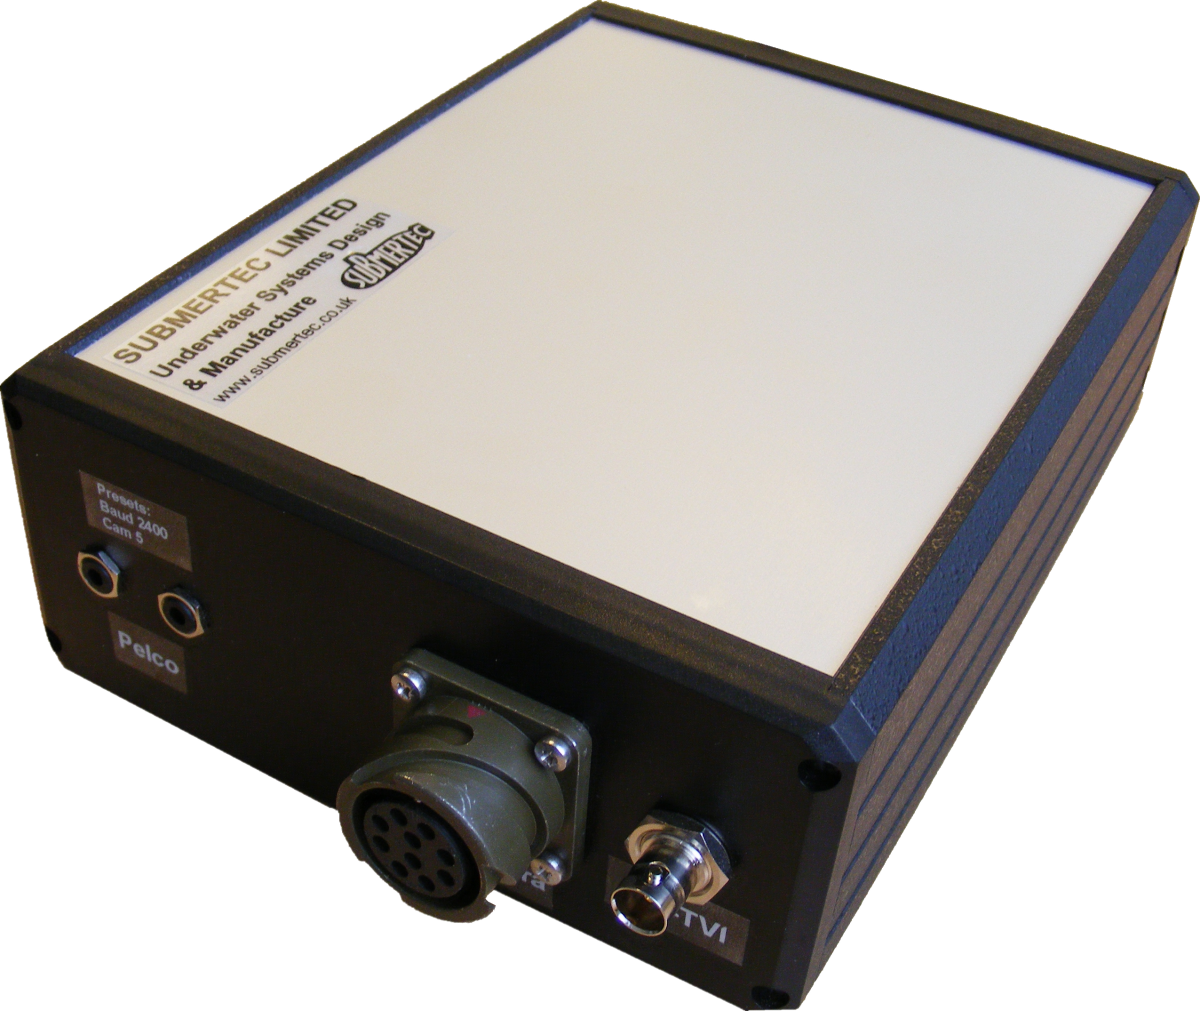 Model SS-CPE Pelco Interface Unit